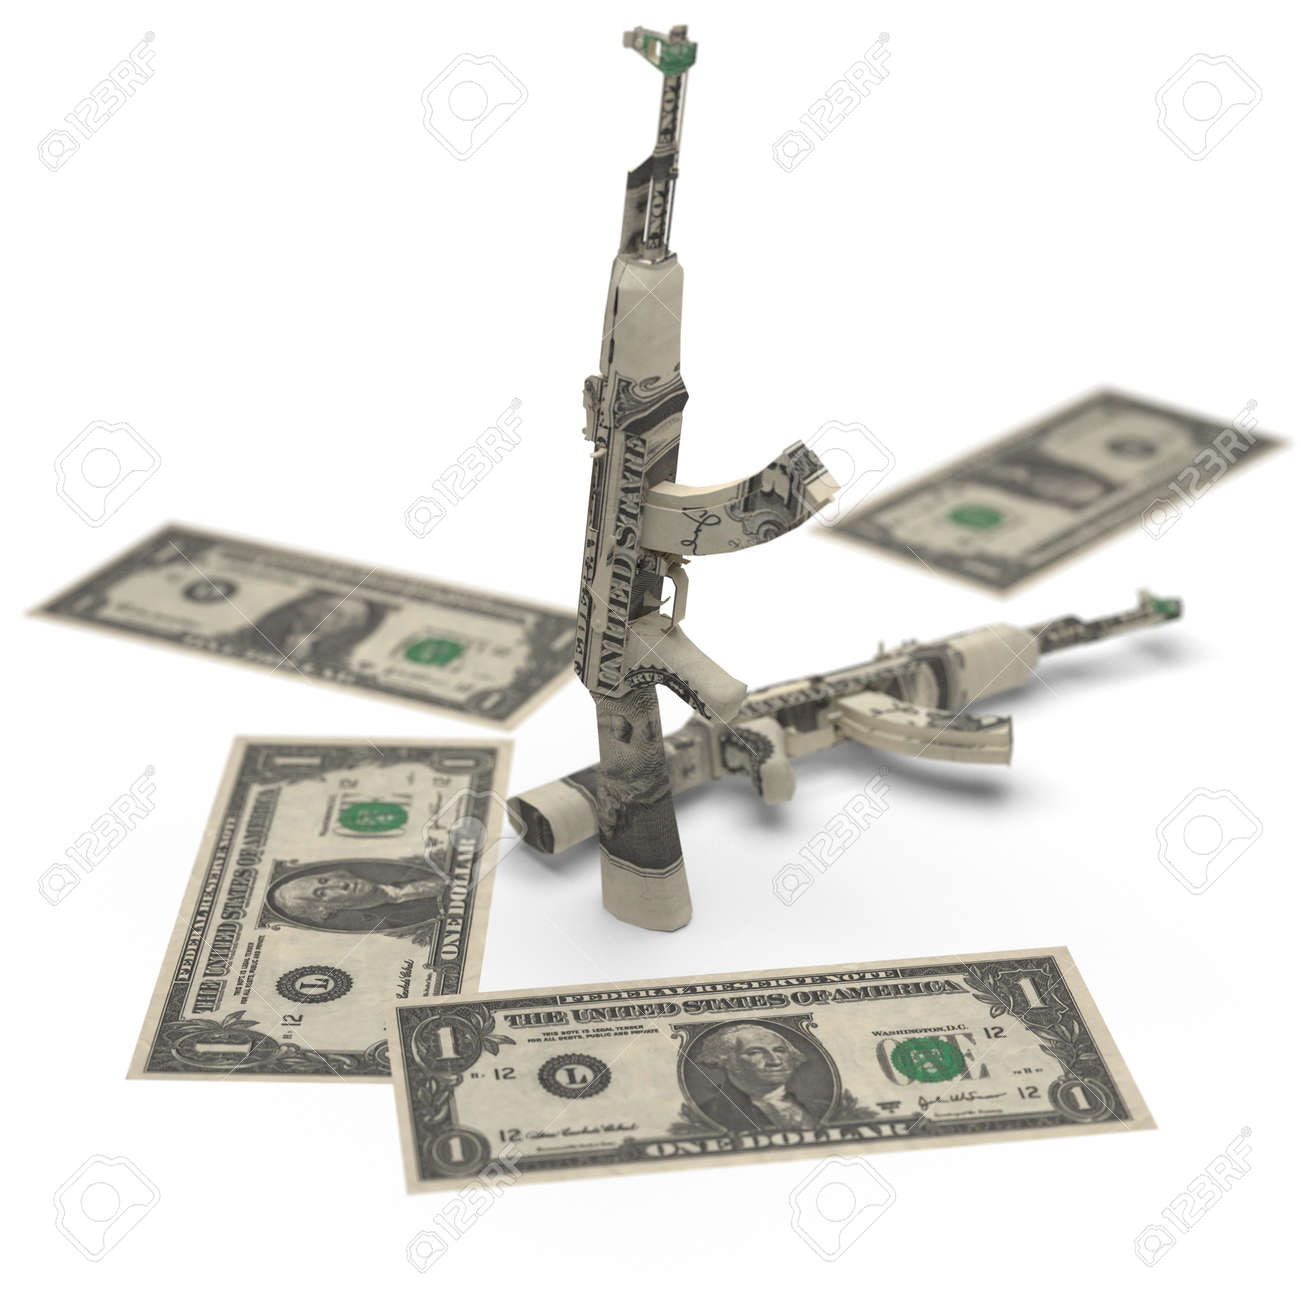 military money origami made in 3D Stock Photo - 12437045